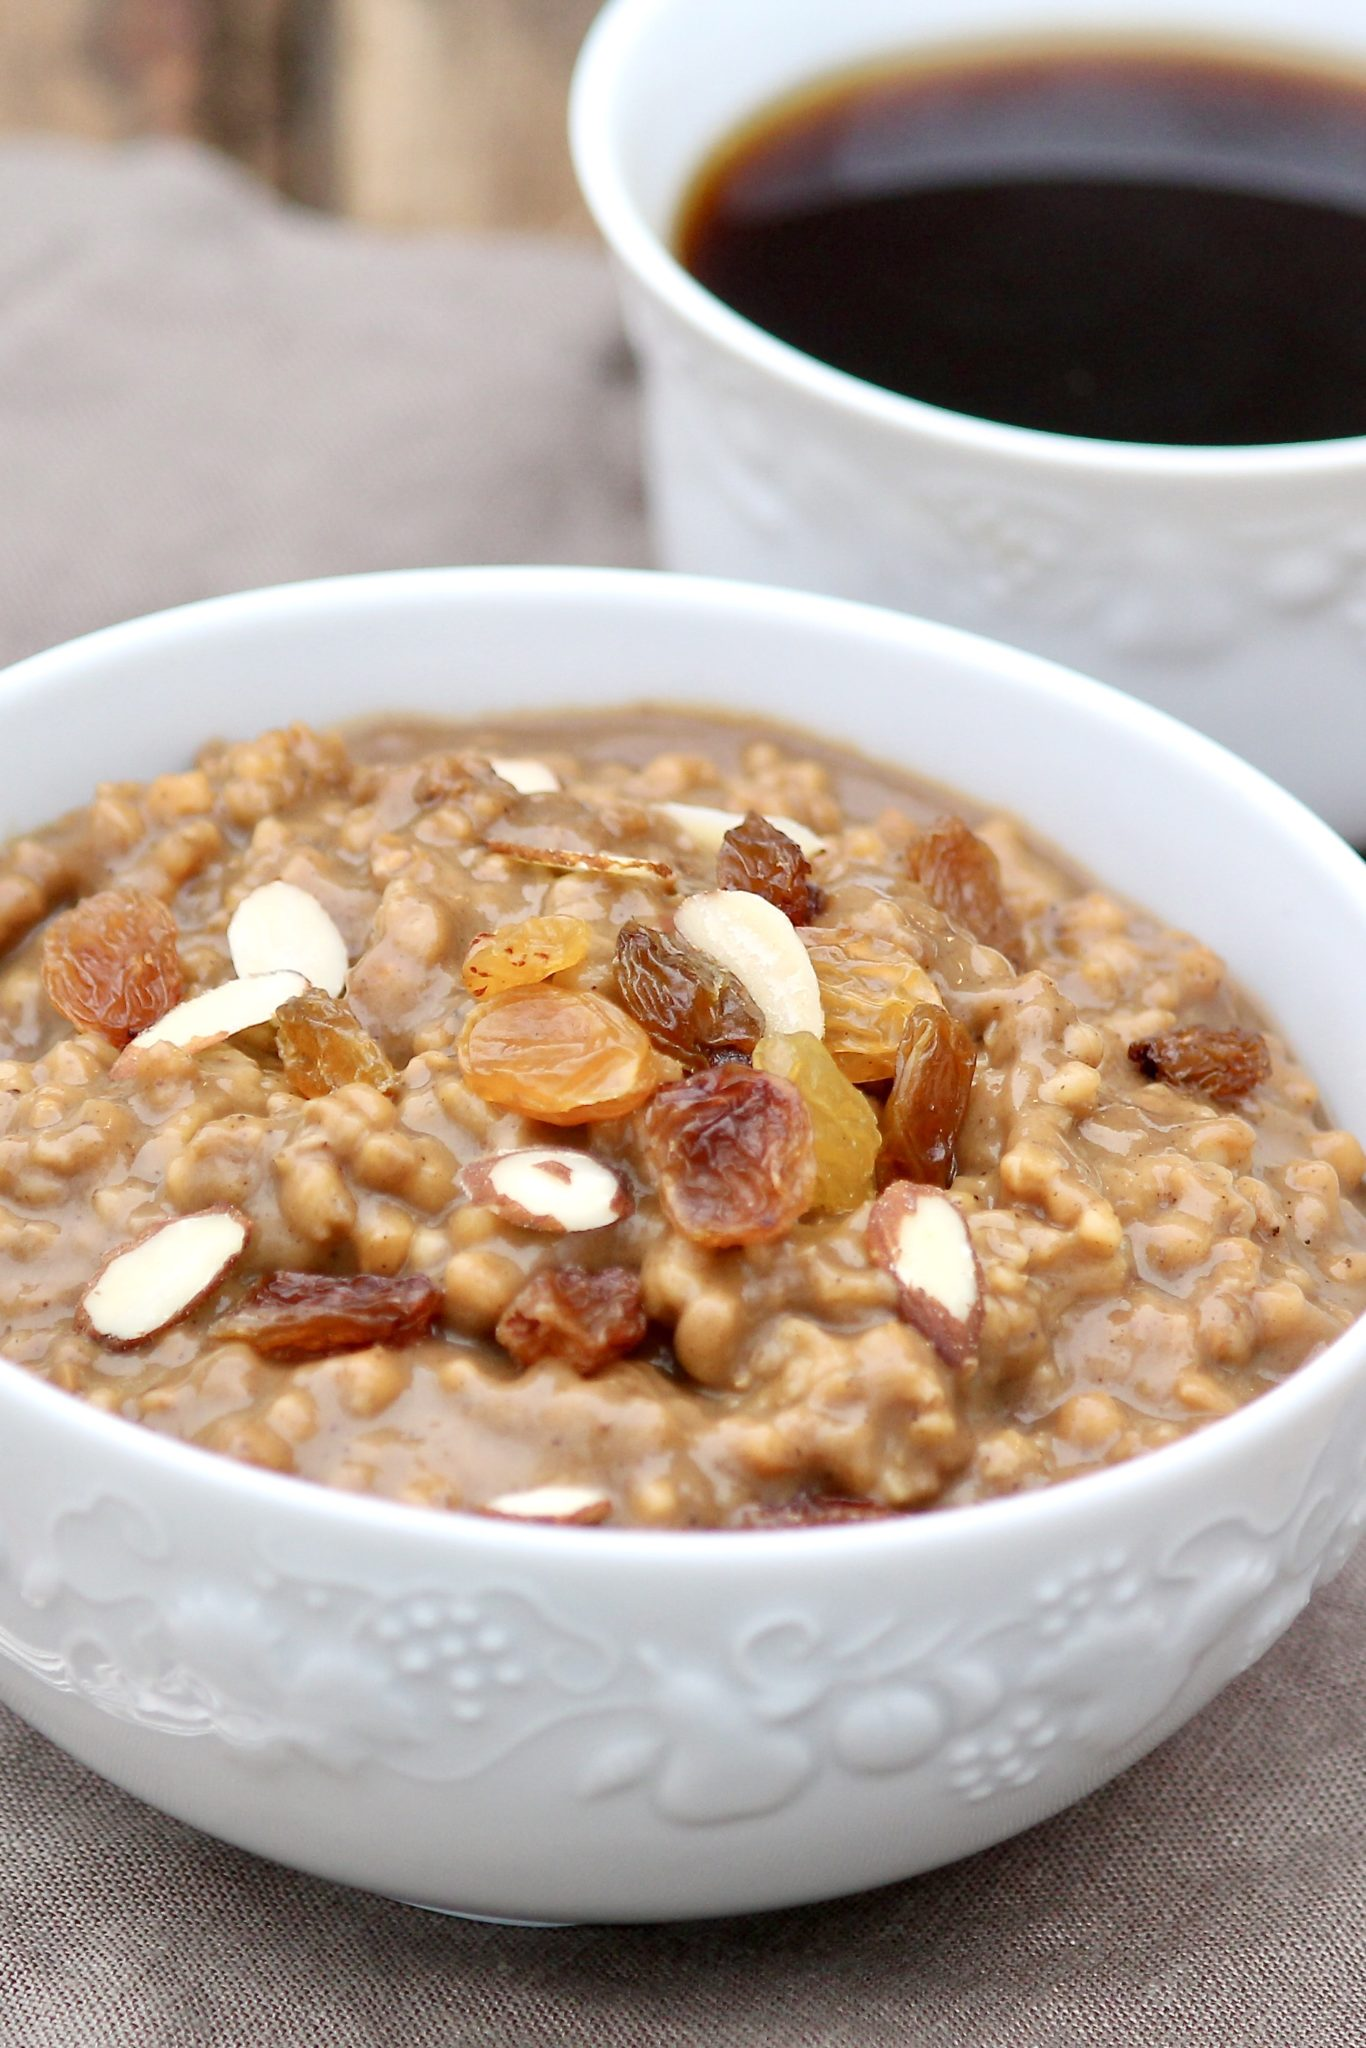 Easy prep-ahead method and slow cooker tip results in ready-to-eat oats with toothsome texture and easy cleanup. The classic spice combination is holiday worthy!